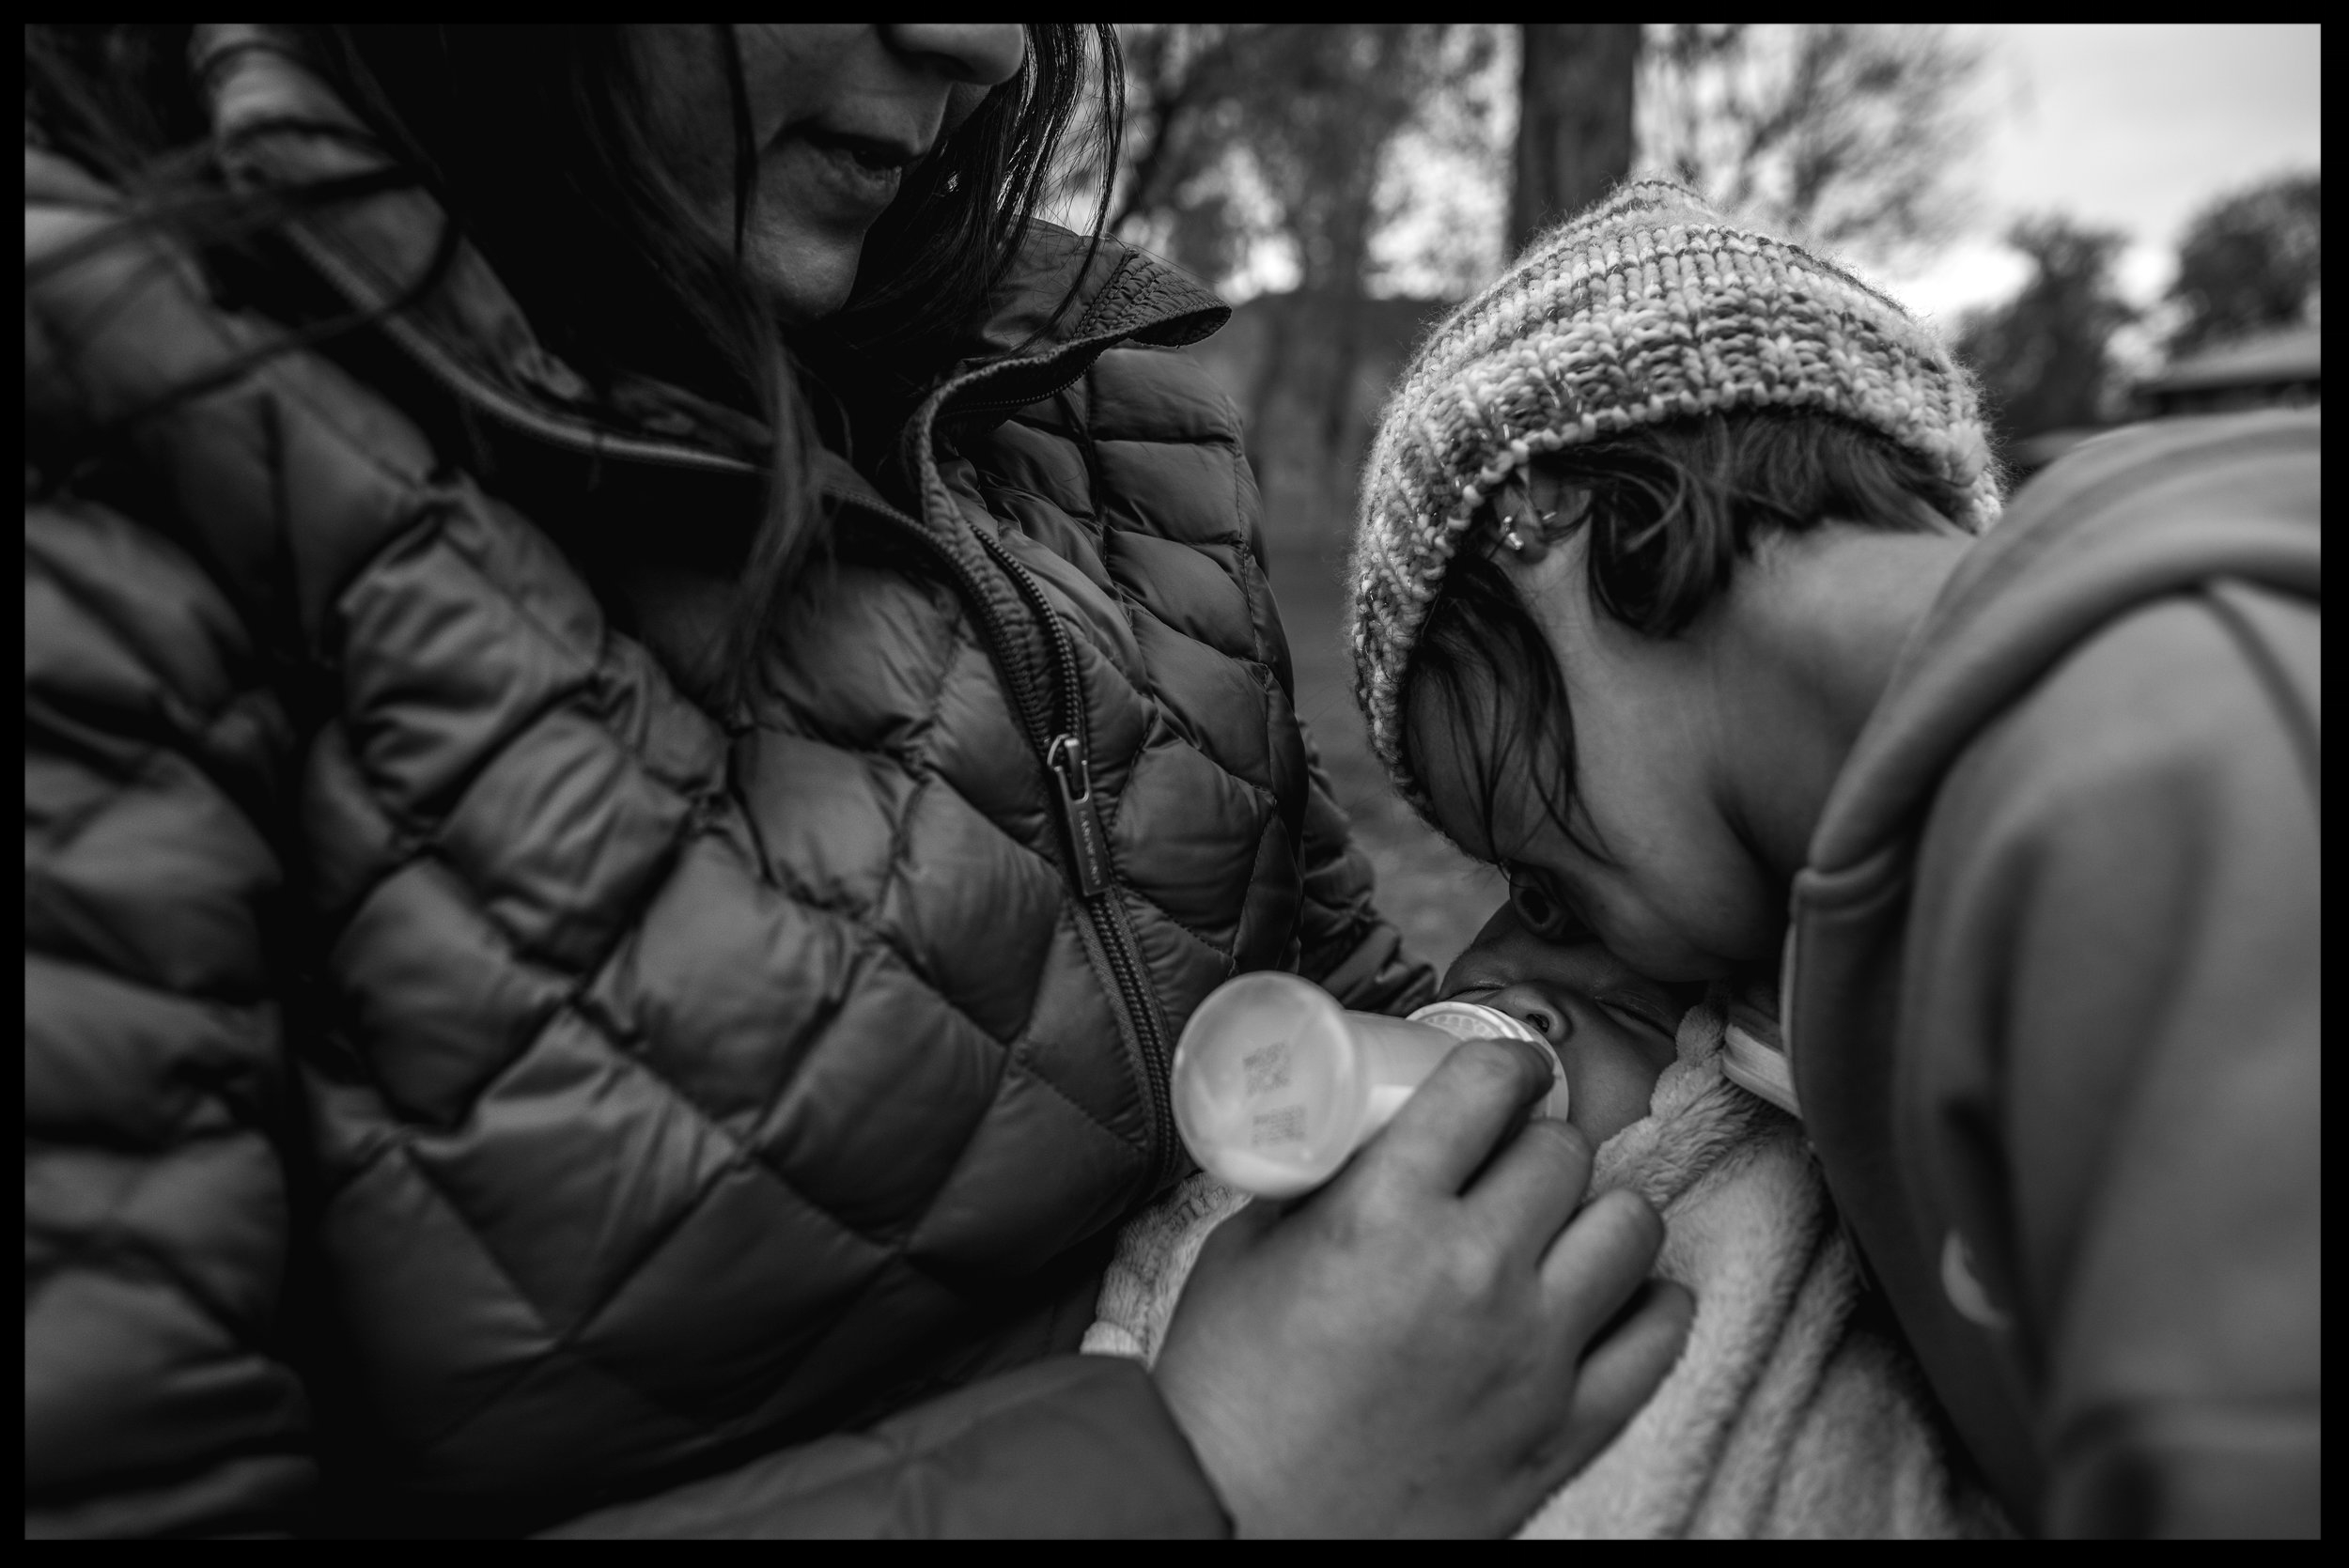 Mother feeding her baby son while his big sister comforts him, black and white, Golden, Colorado